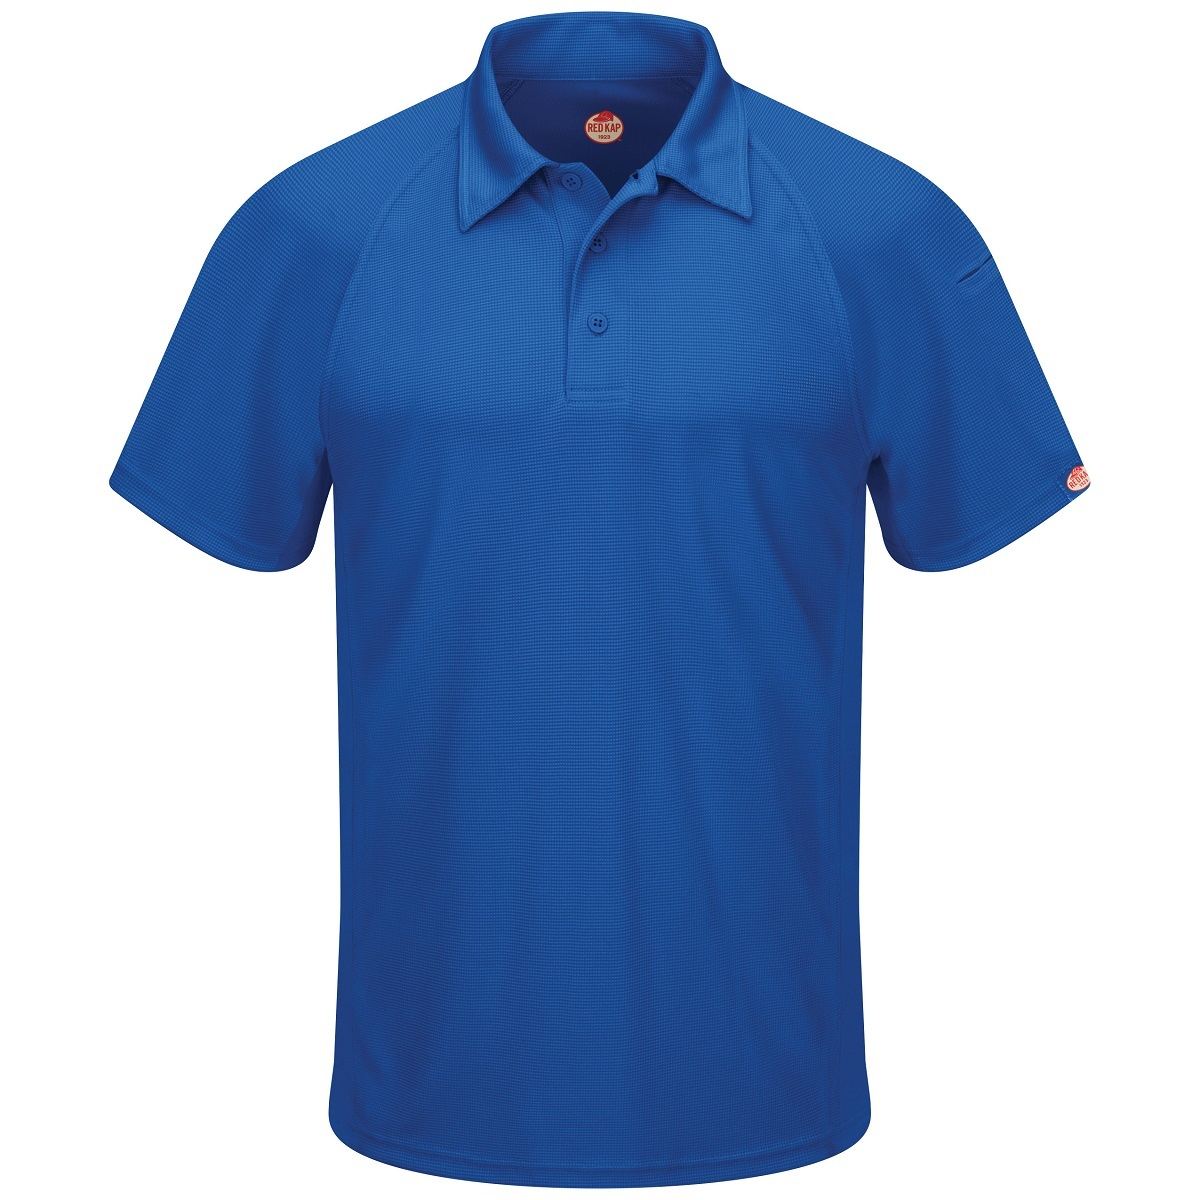 4ed248a9 Red Kap SK92 Men's Performance Knit Flex Series Active Polo - Royal Blue